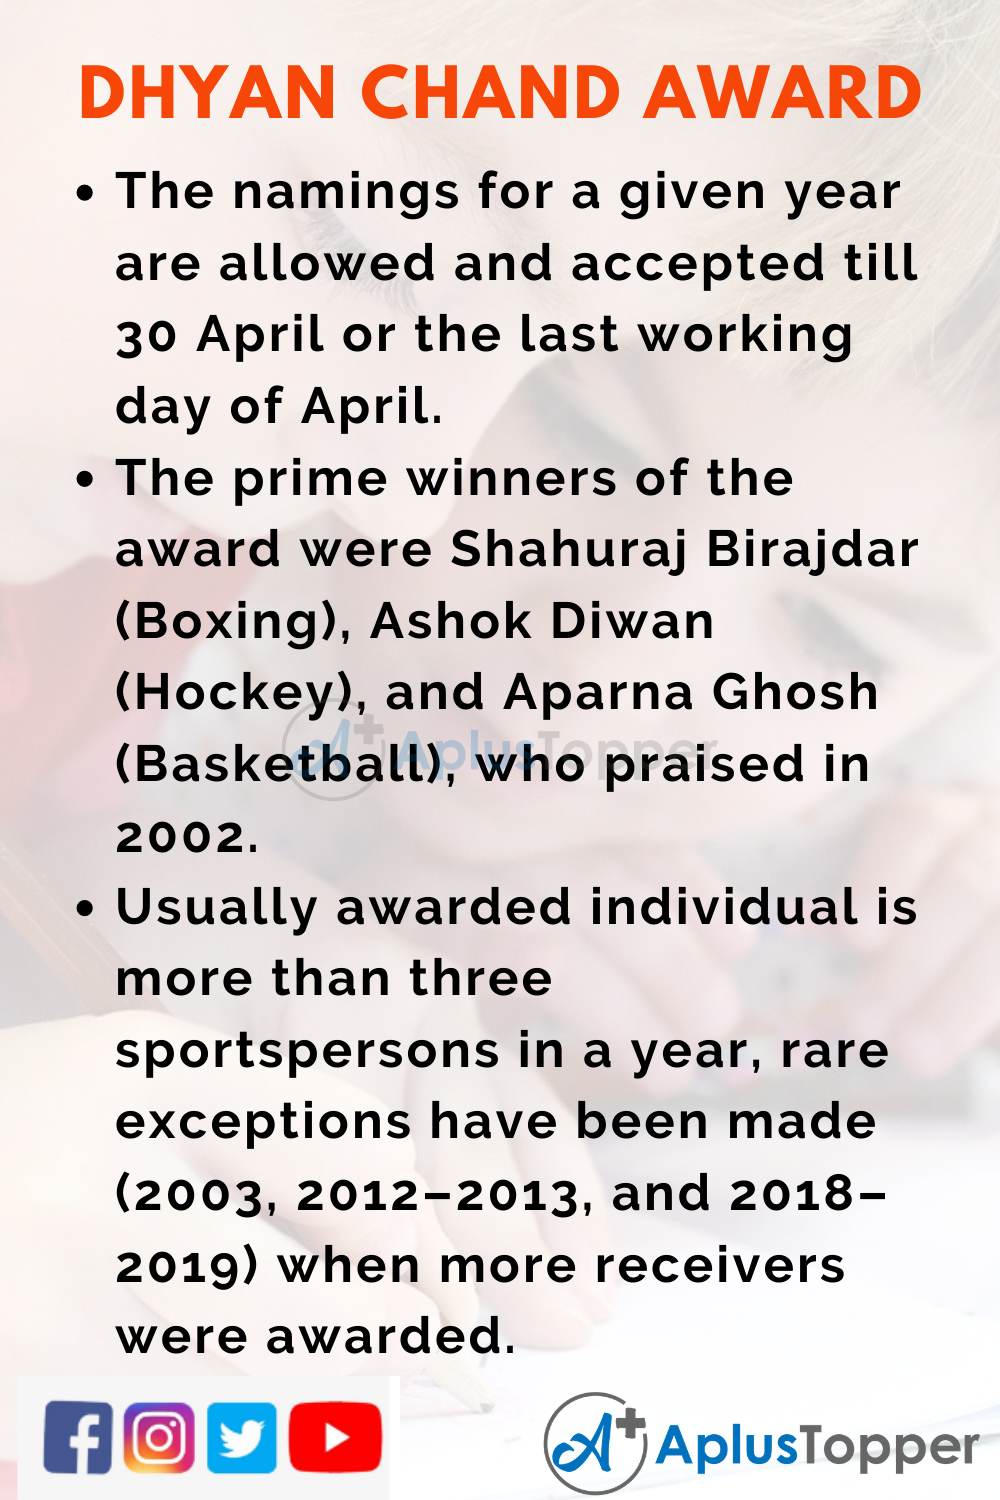 10 Lines of Dhyan Chand Award